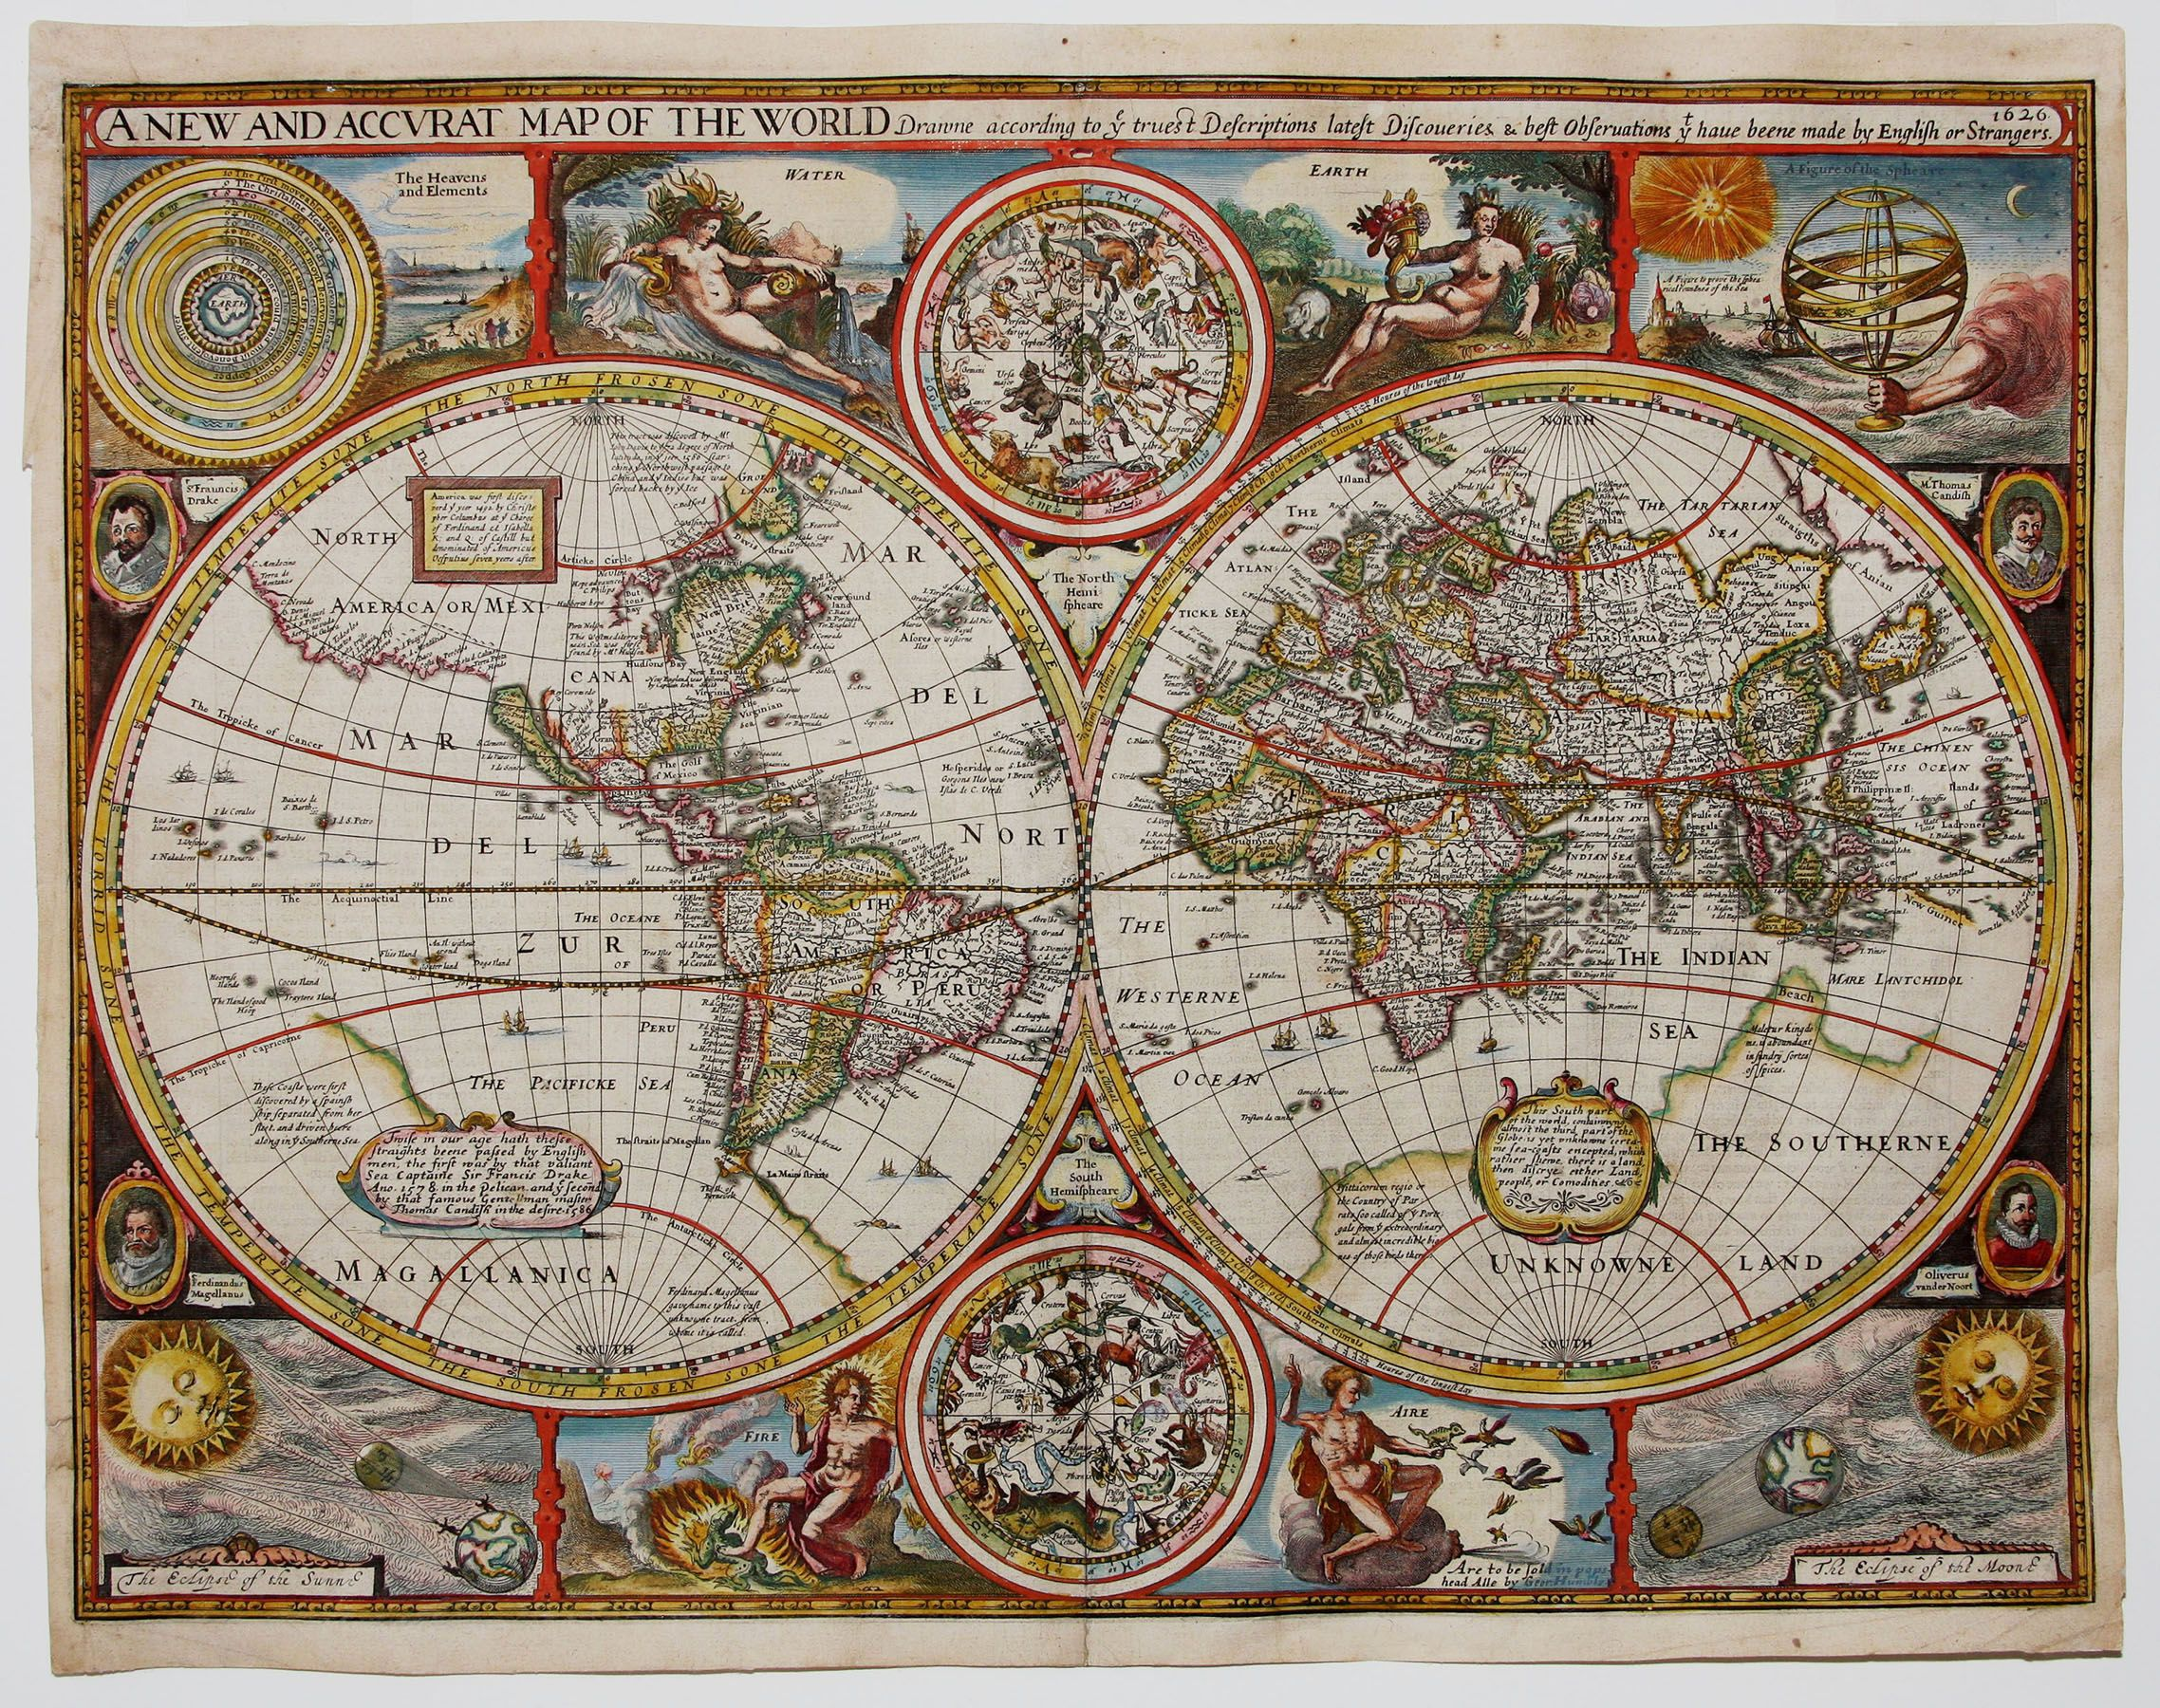 John Speed S 1627 World Map Mappe Antiche Cartografia E